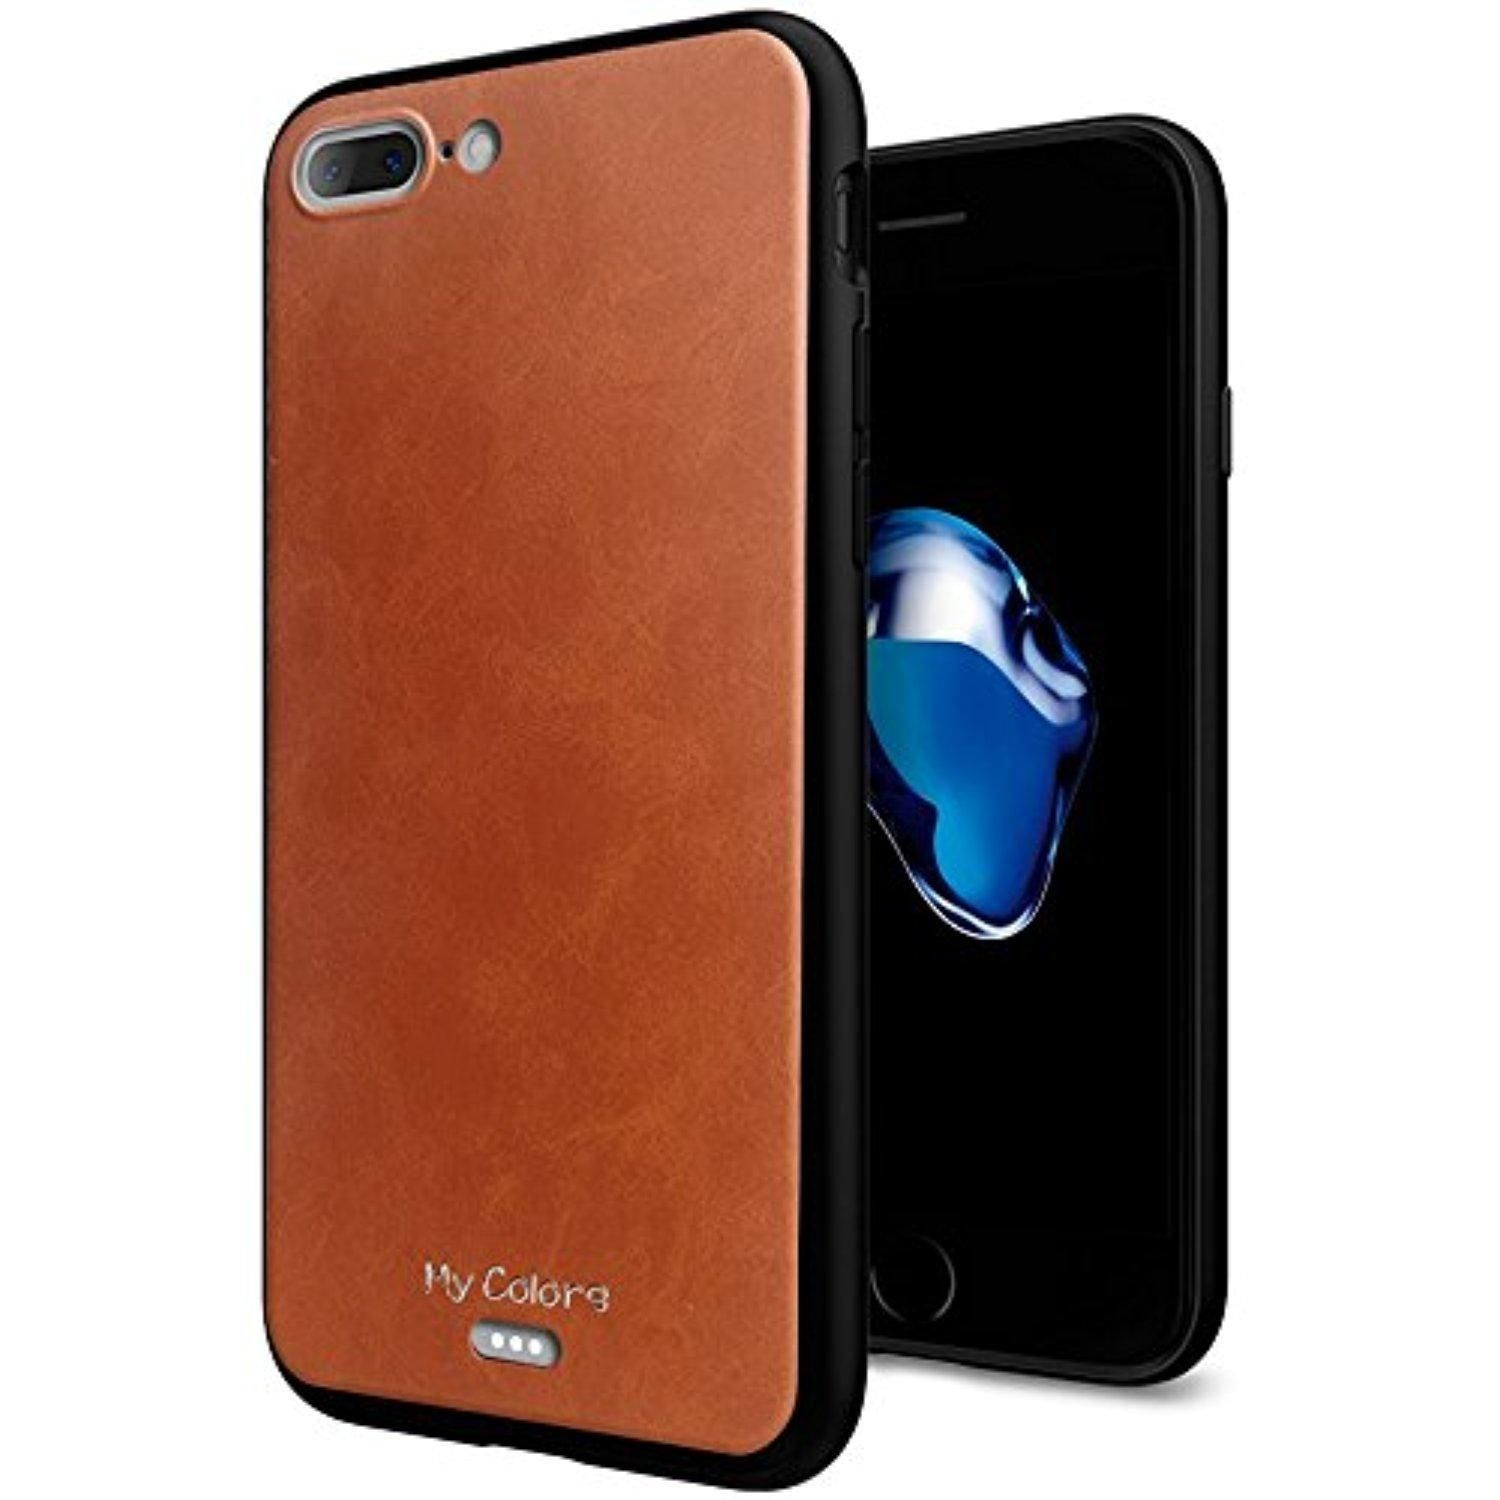 premium iphone 7 plus case